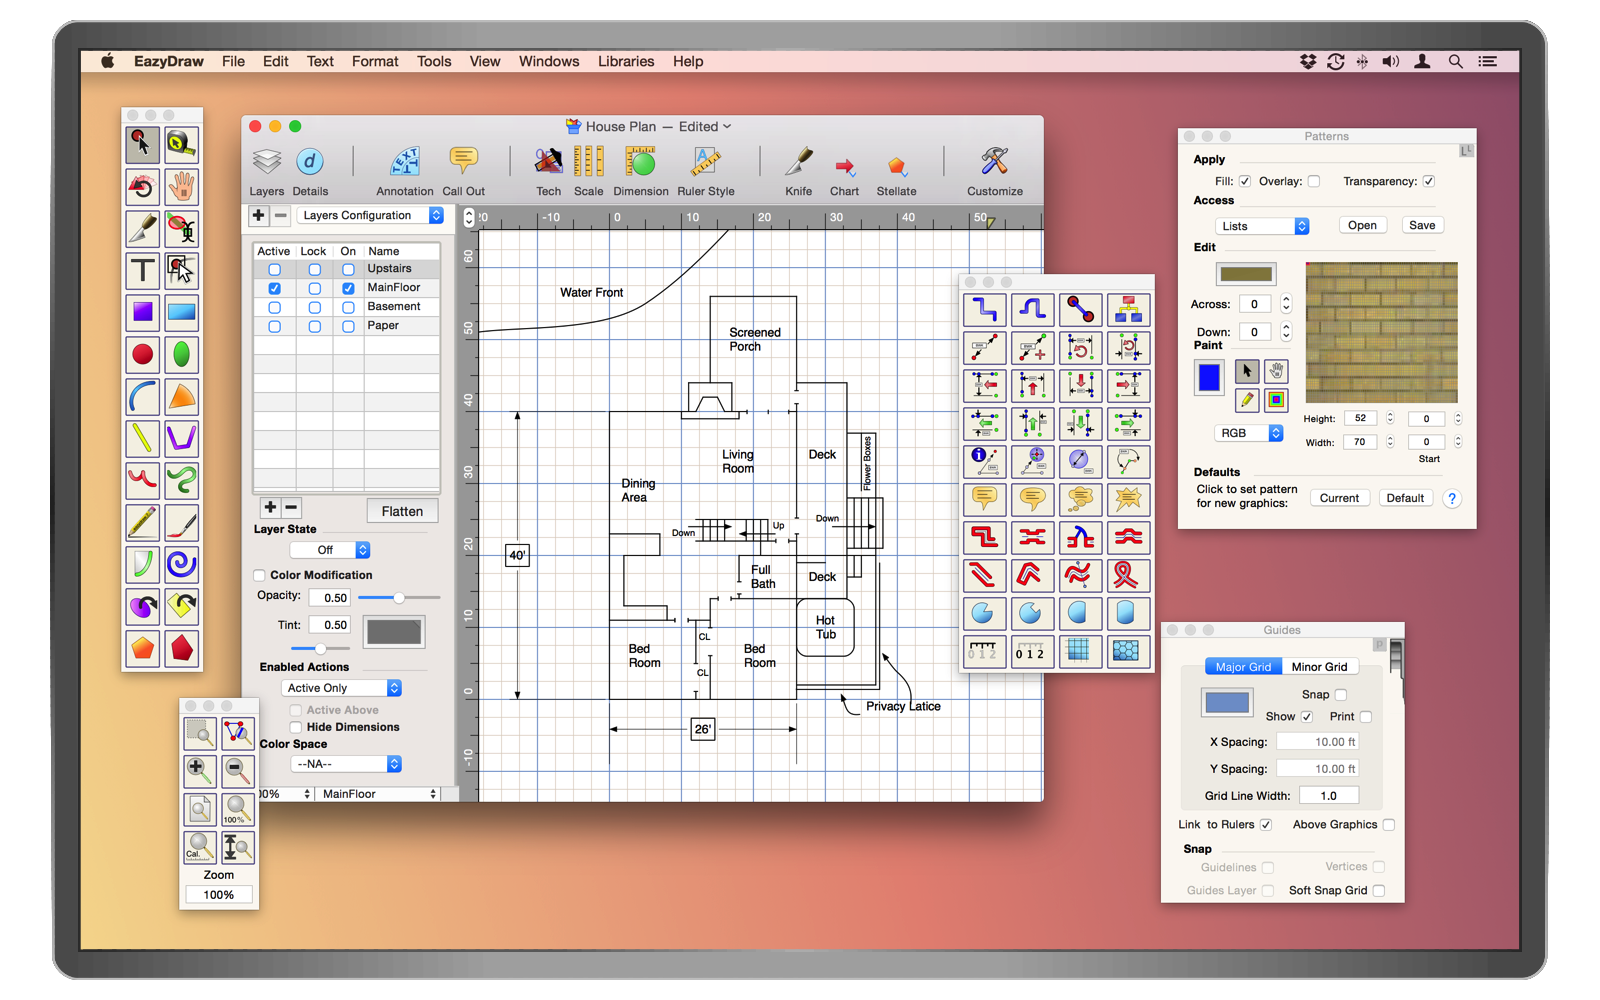 Eazydraw 8 7 3 Free Download For Mac